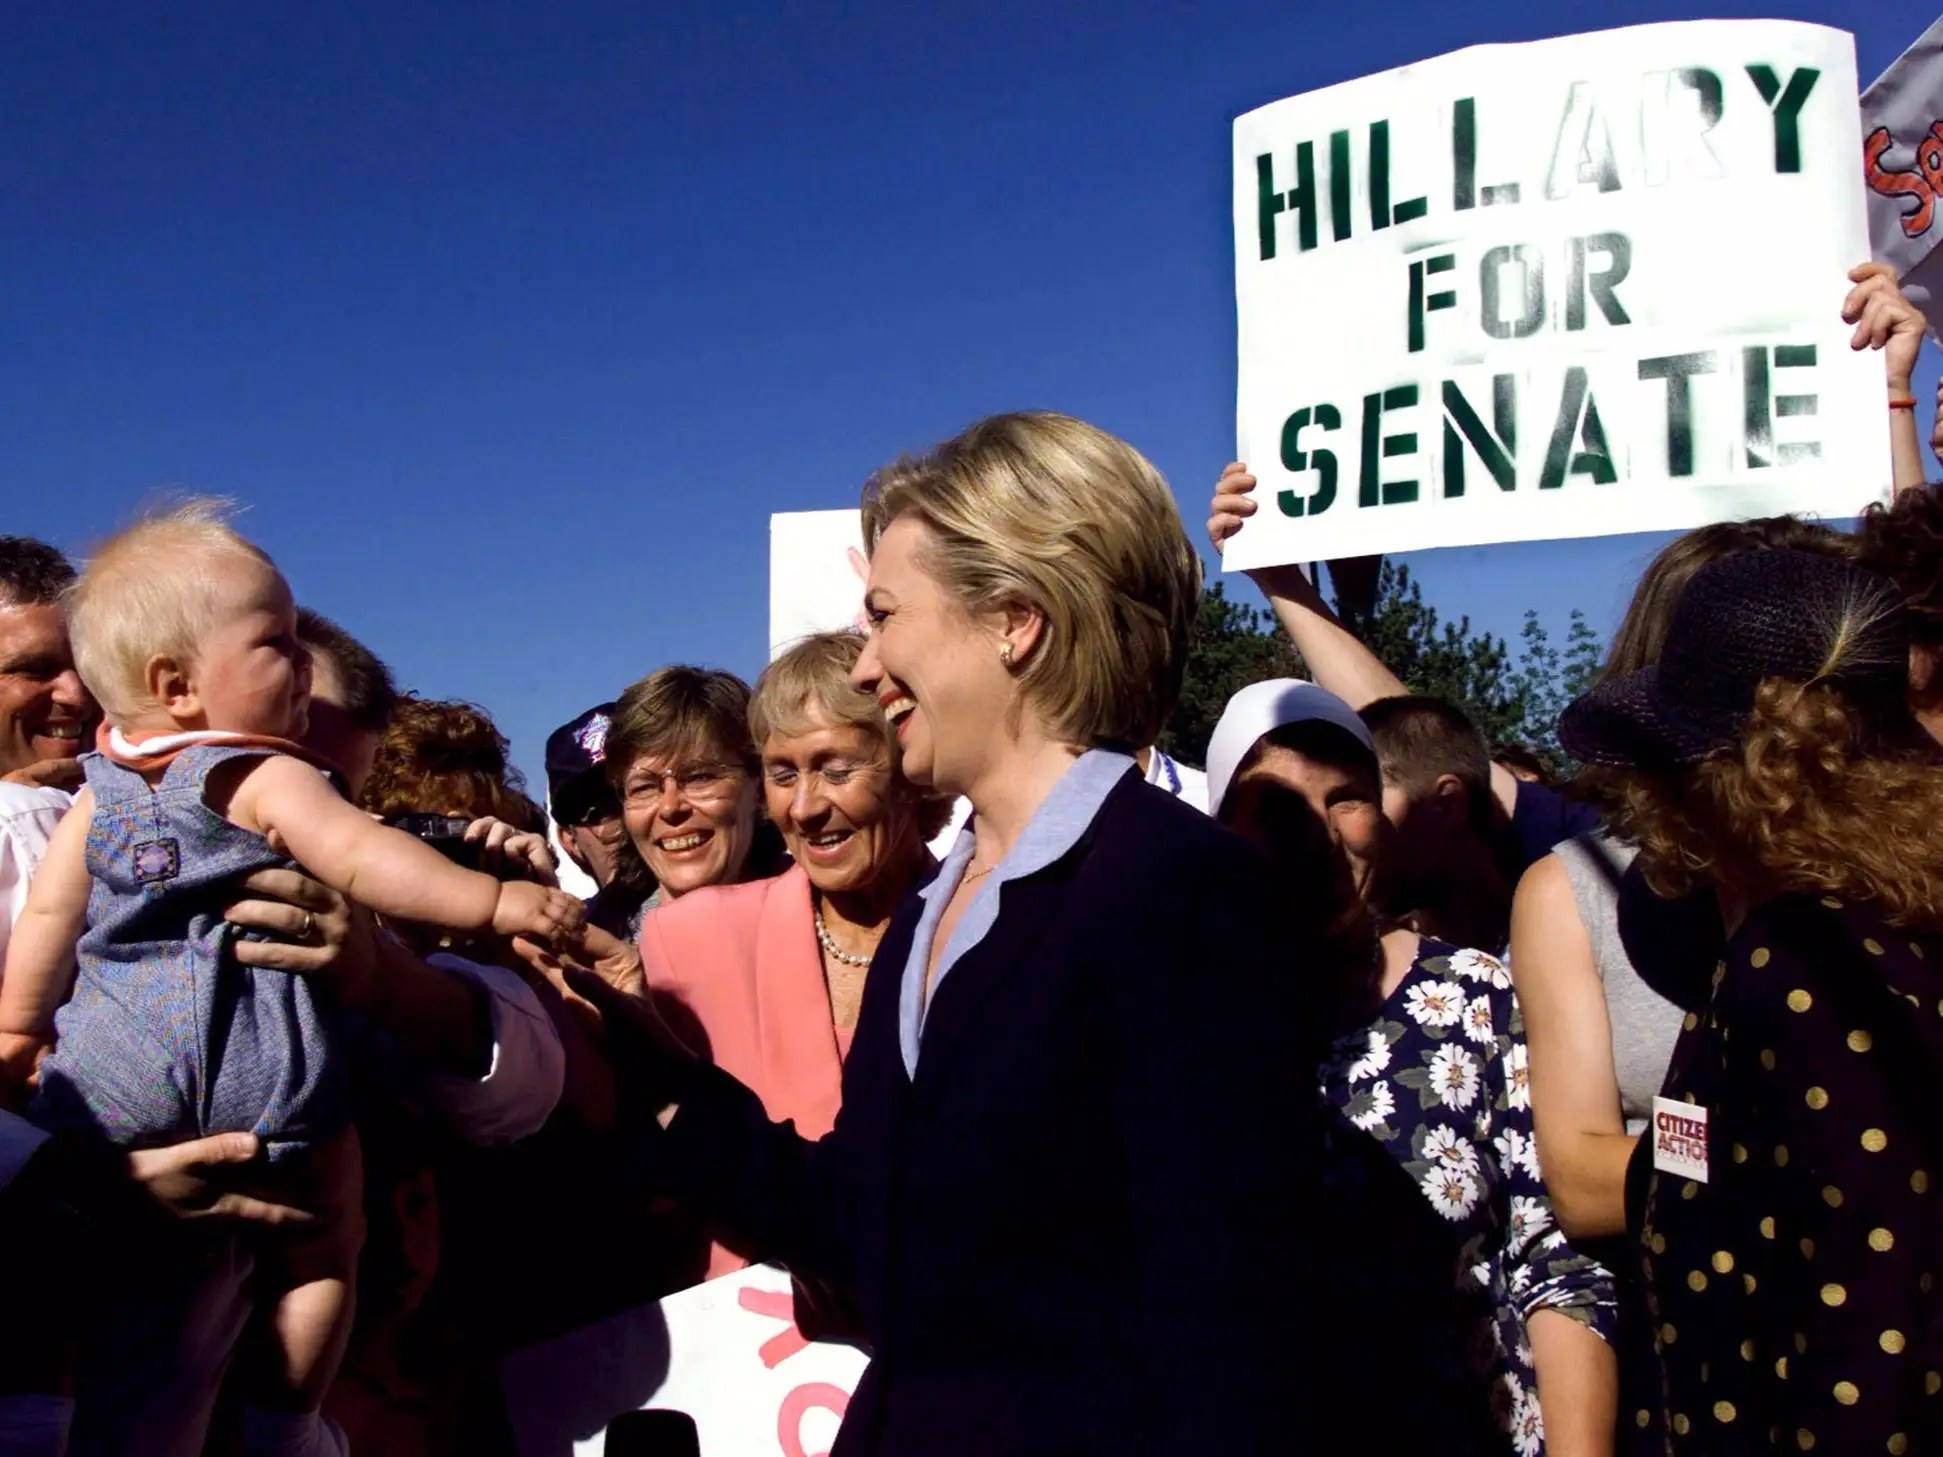 The first woman senator from New York, Clinton helped expand broadband across the state, expanded TRICARE, and secured $20 billion to rebuild New York after the terrorist attacks of September 11, 2001.